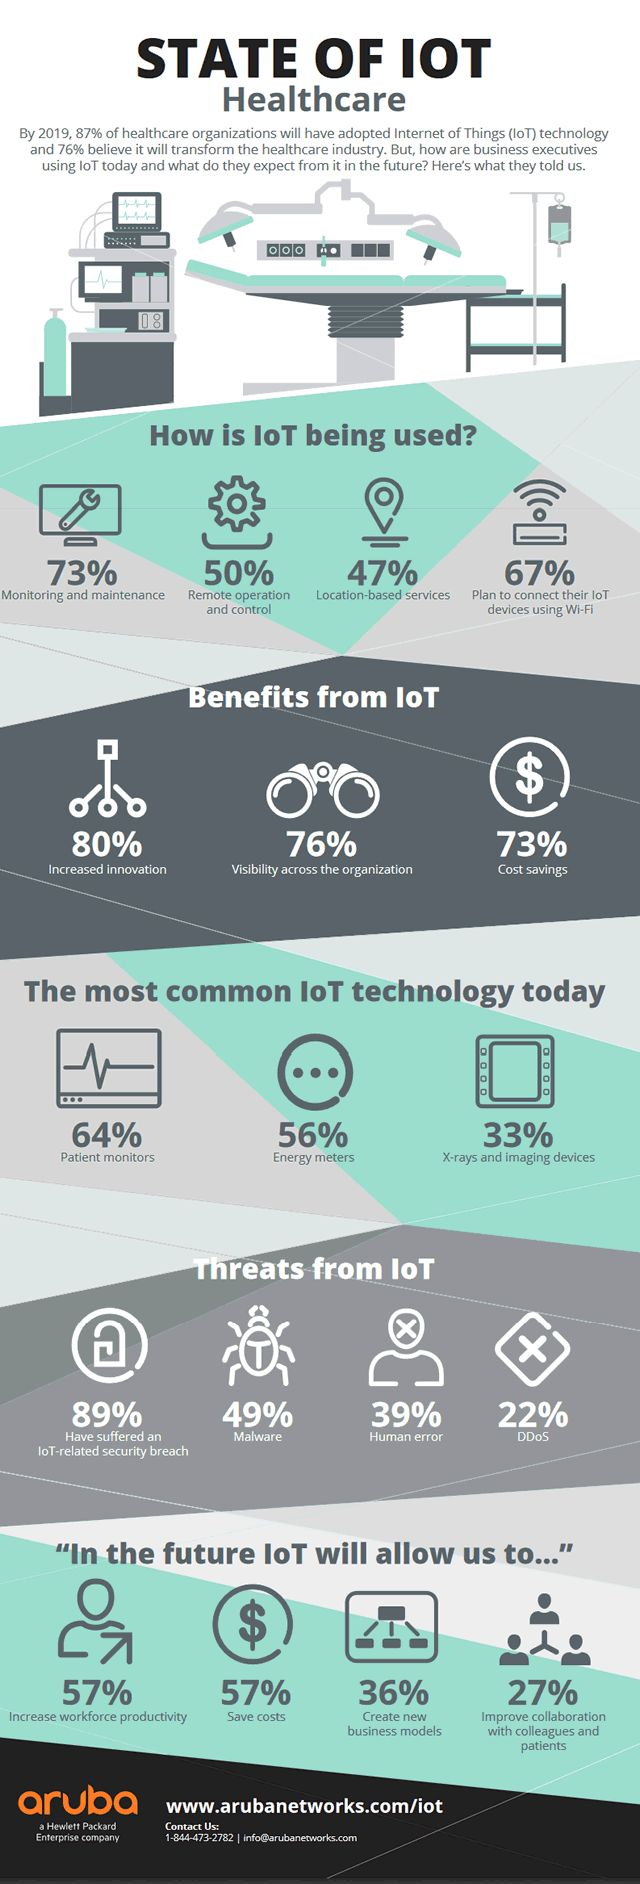 State of IoT Healthcare infographic by Aruba Networks – info on the research – larger infographic